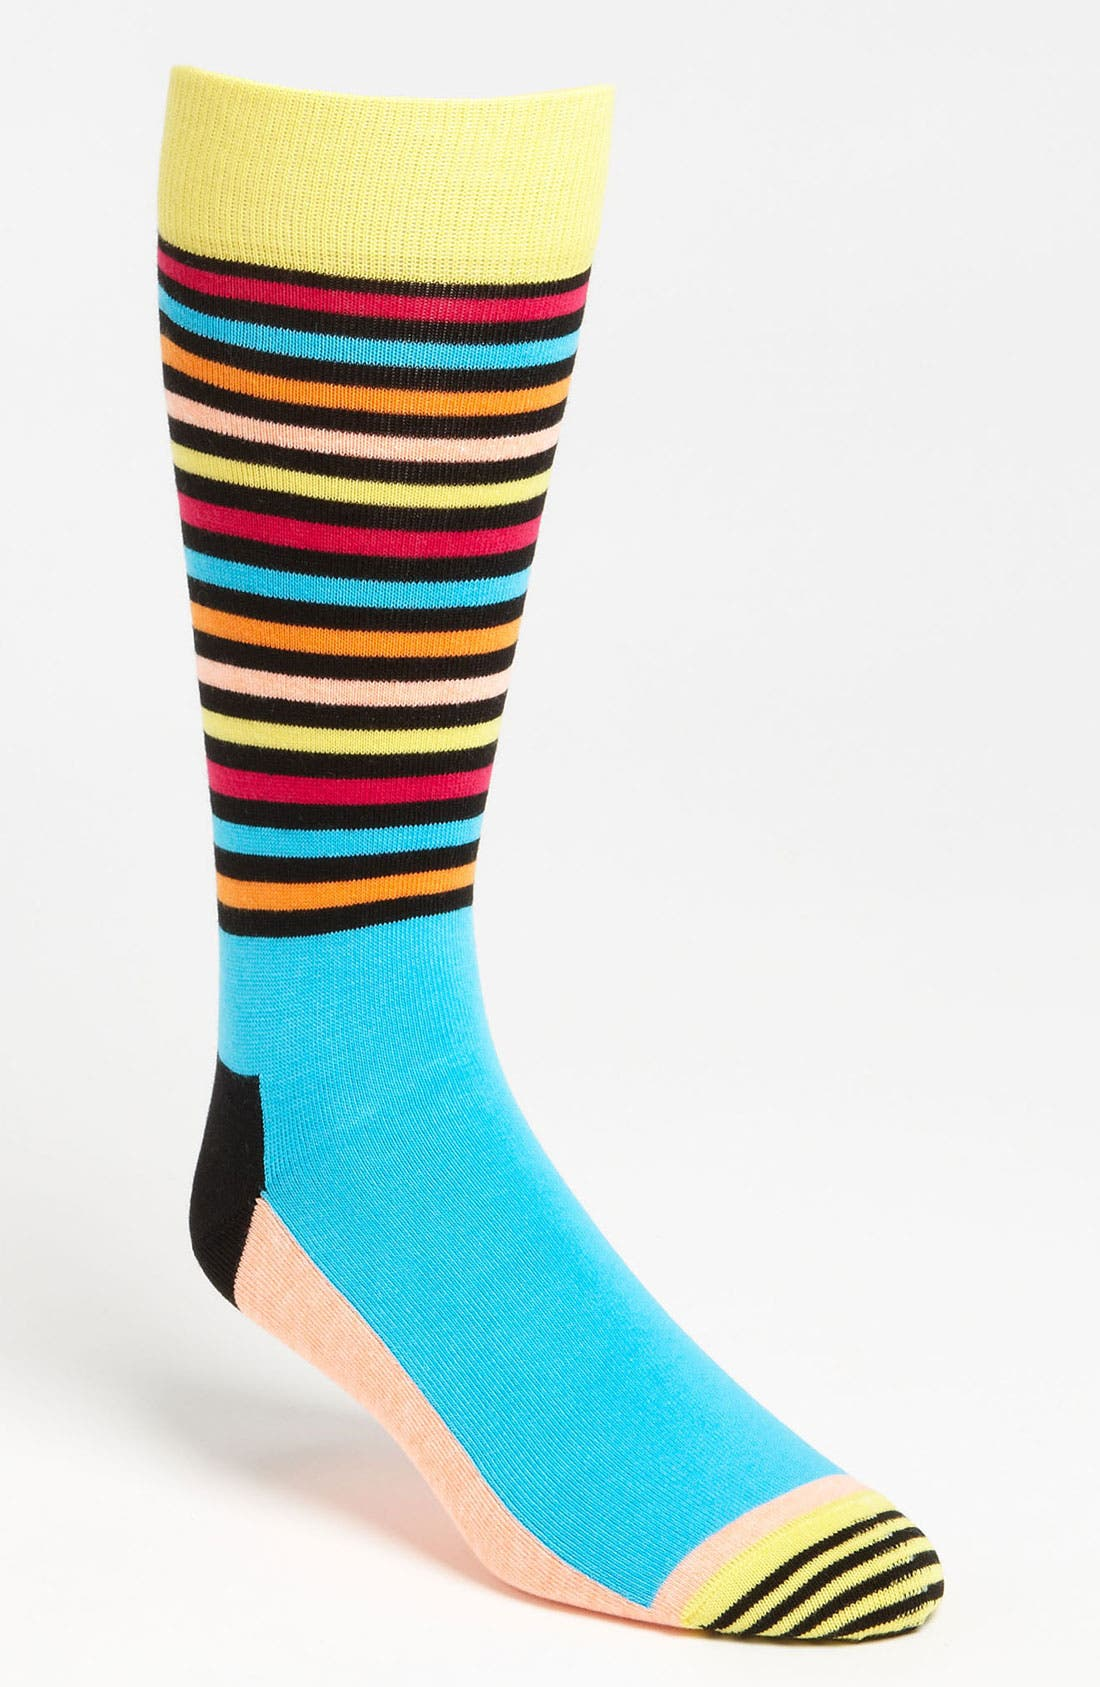 Alternate Image 1 Selected - Happy Socks Patterned Cotton Blend Socks